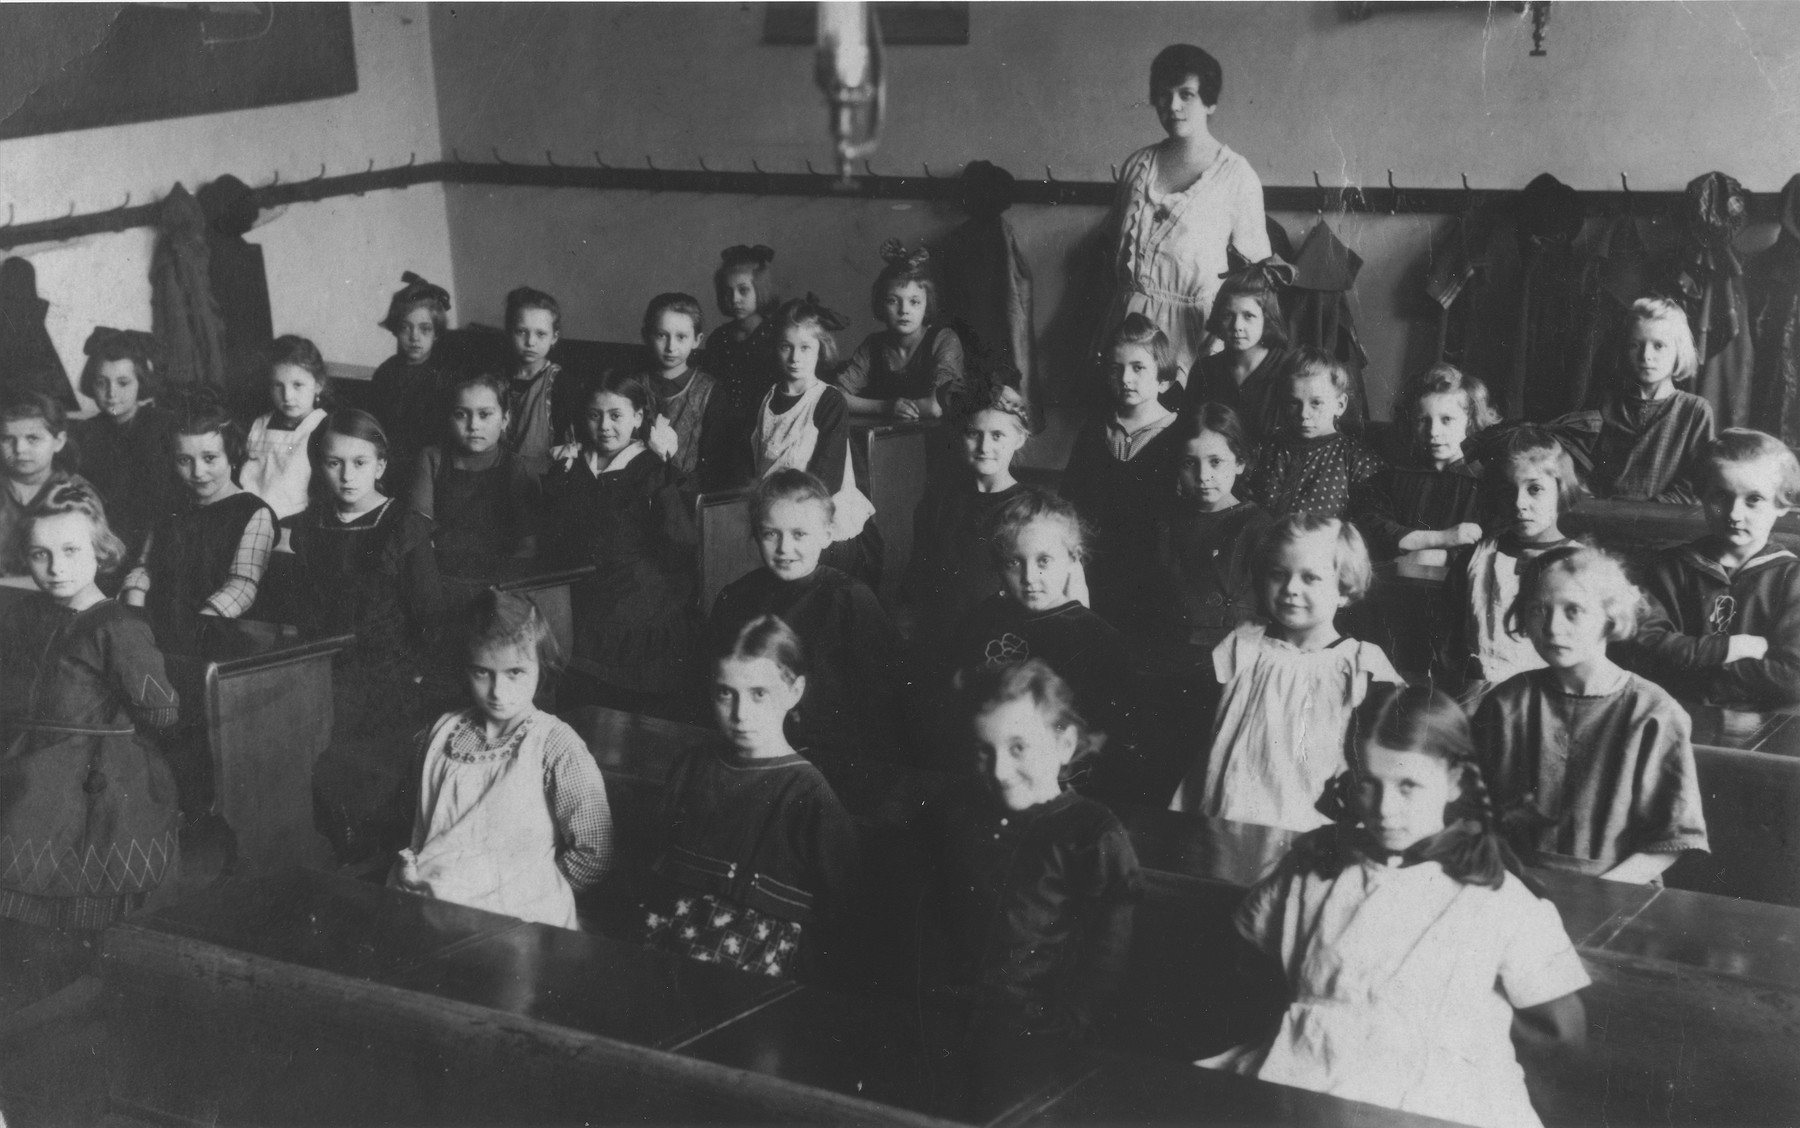 Pupils pose with their teacher in a classroom at an elementary school in Prague.  Among those pictured are Marta Mautnerova (third row from the front, at the far left).